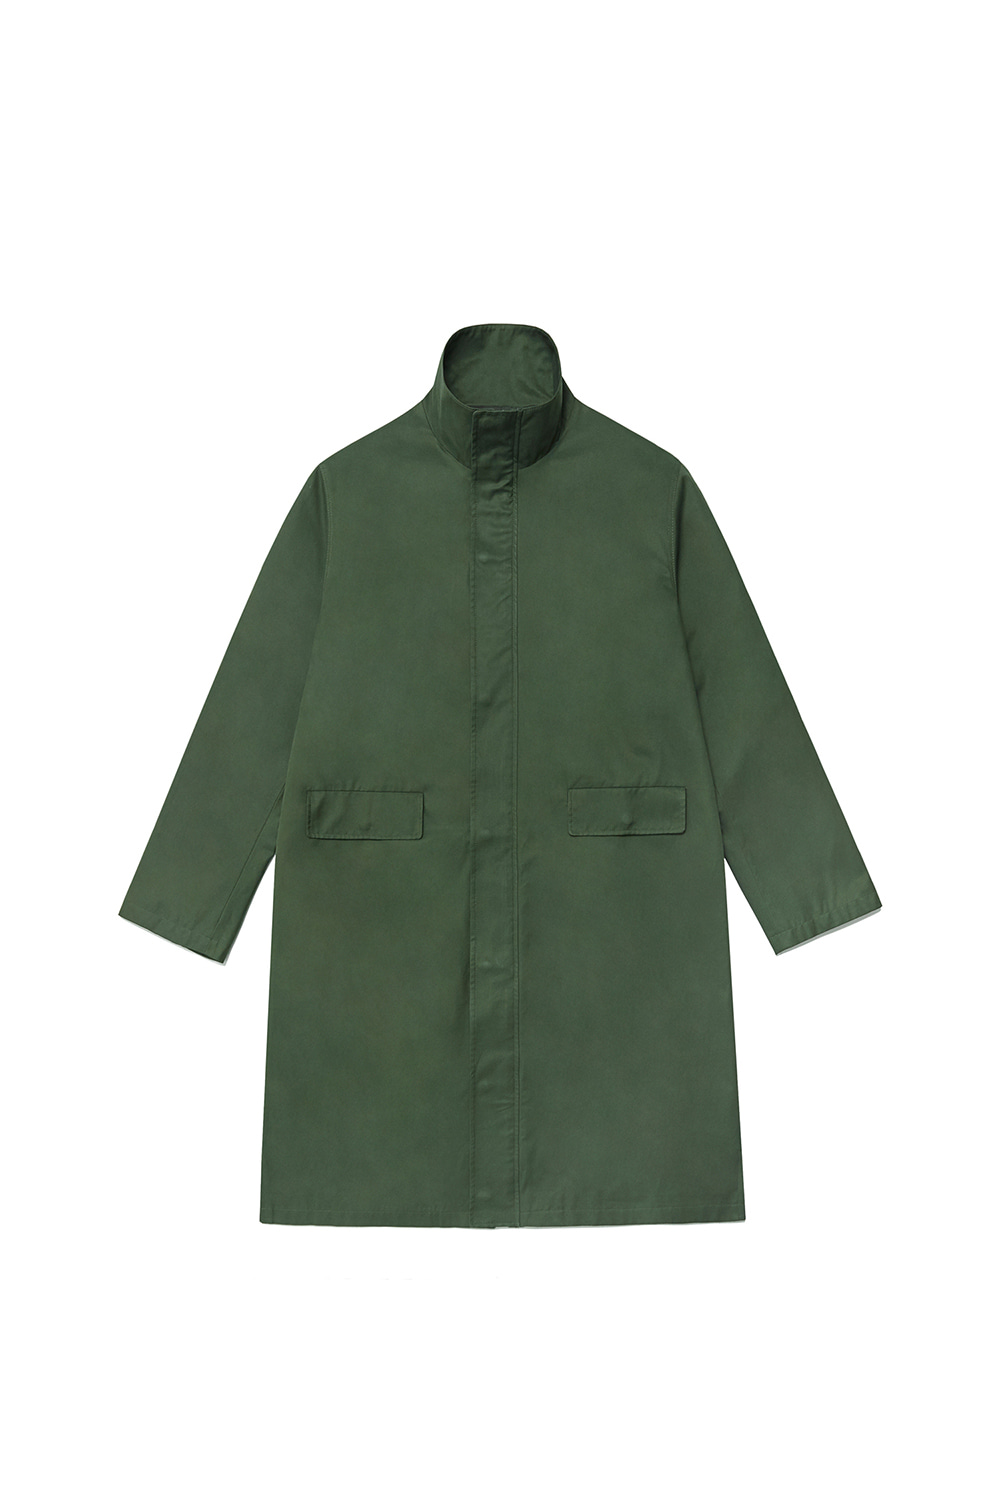 Mod Coat Men [Khaki]